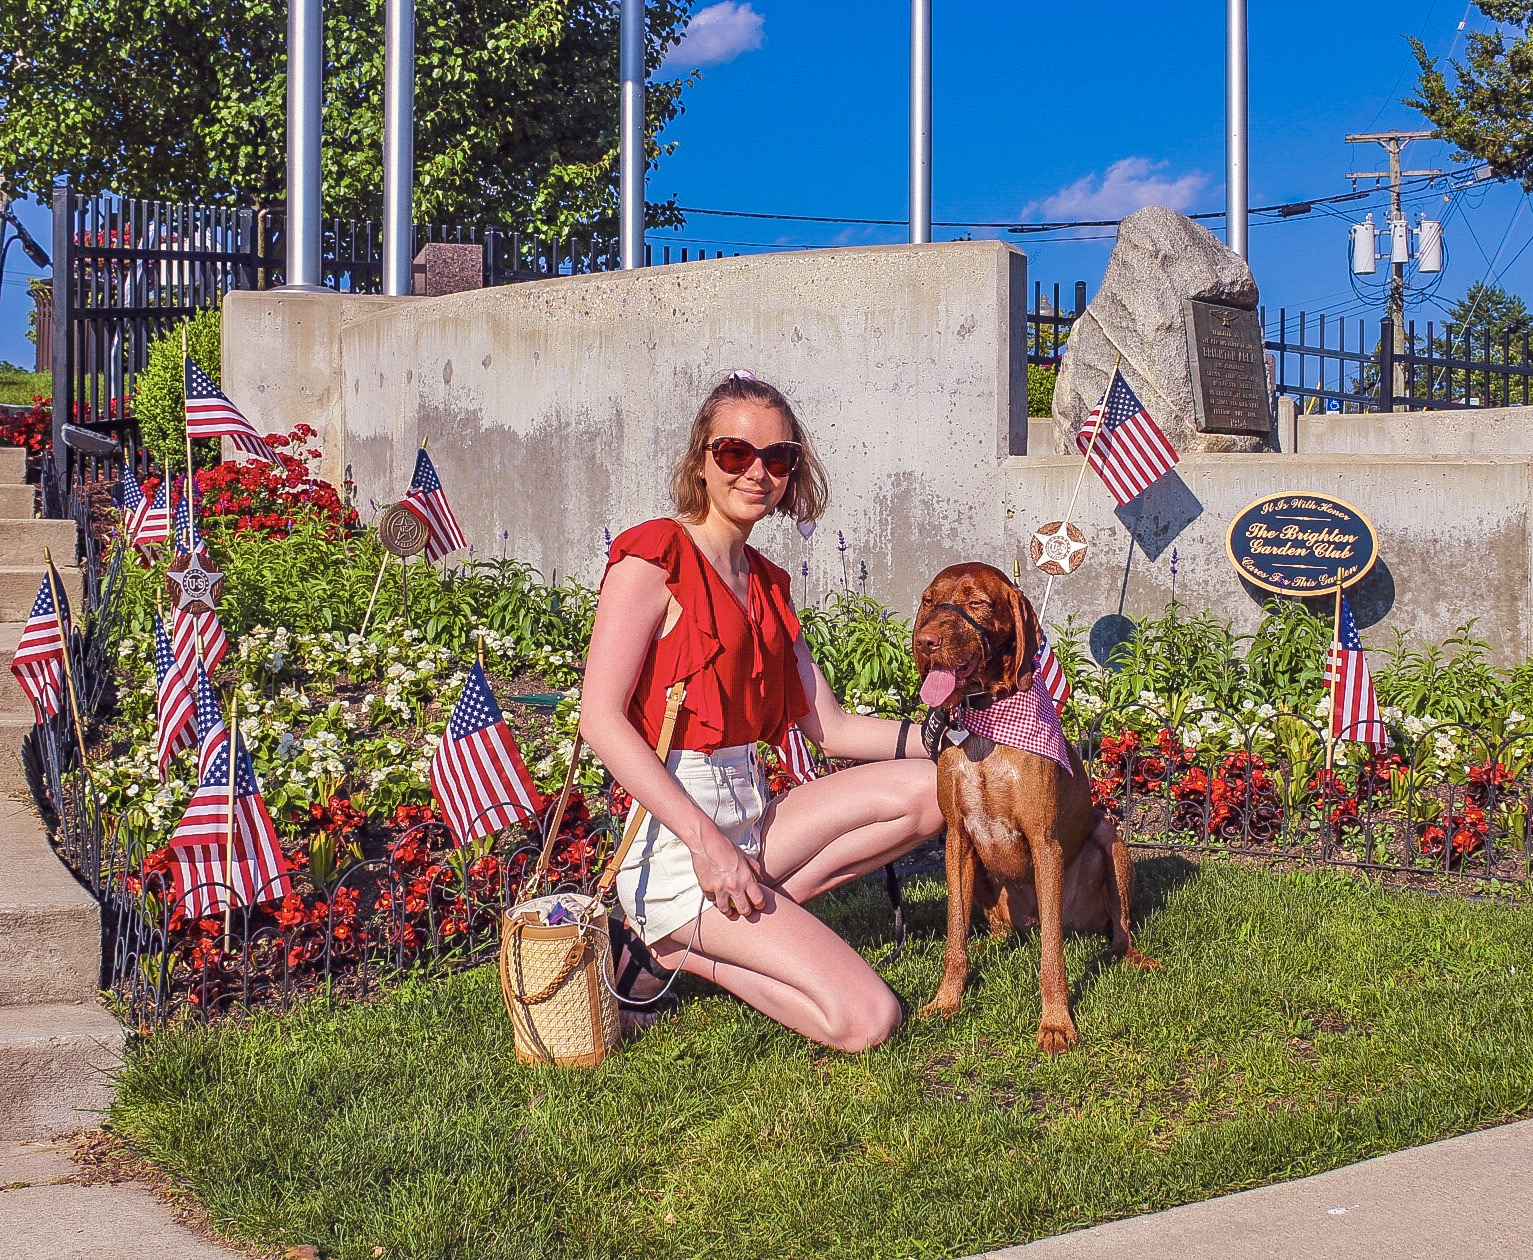 Image Description: Cienna and Piper(a red wirehaired vizsla) sit on grass in front of a garden full of red and white flowers with American flags. There is a rock veteran memorial behind them. Cienna is smiling wearing sunglasses, a red ruffle shirt, cream shorts, with her pacemaker wire running out from between her shirt and shorts to a woven basket bag. Piper is wearing a red gingham bandana and squinting at the camera with his tongue out.